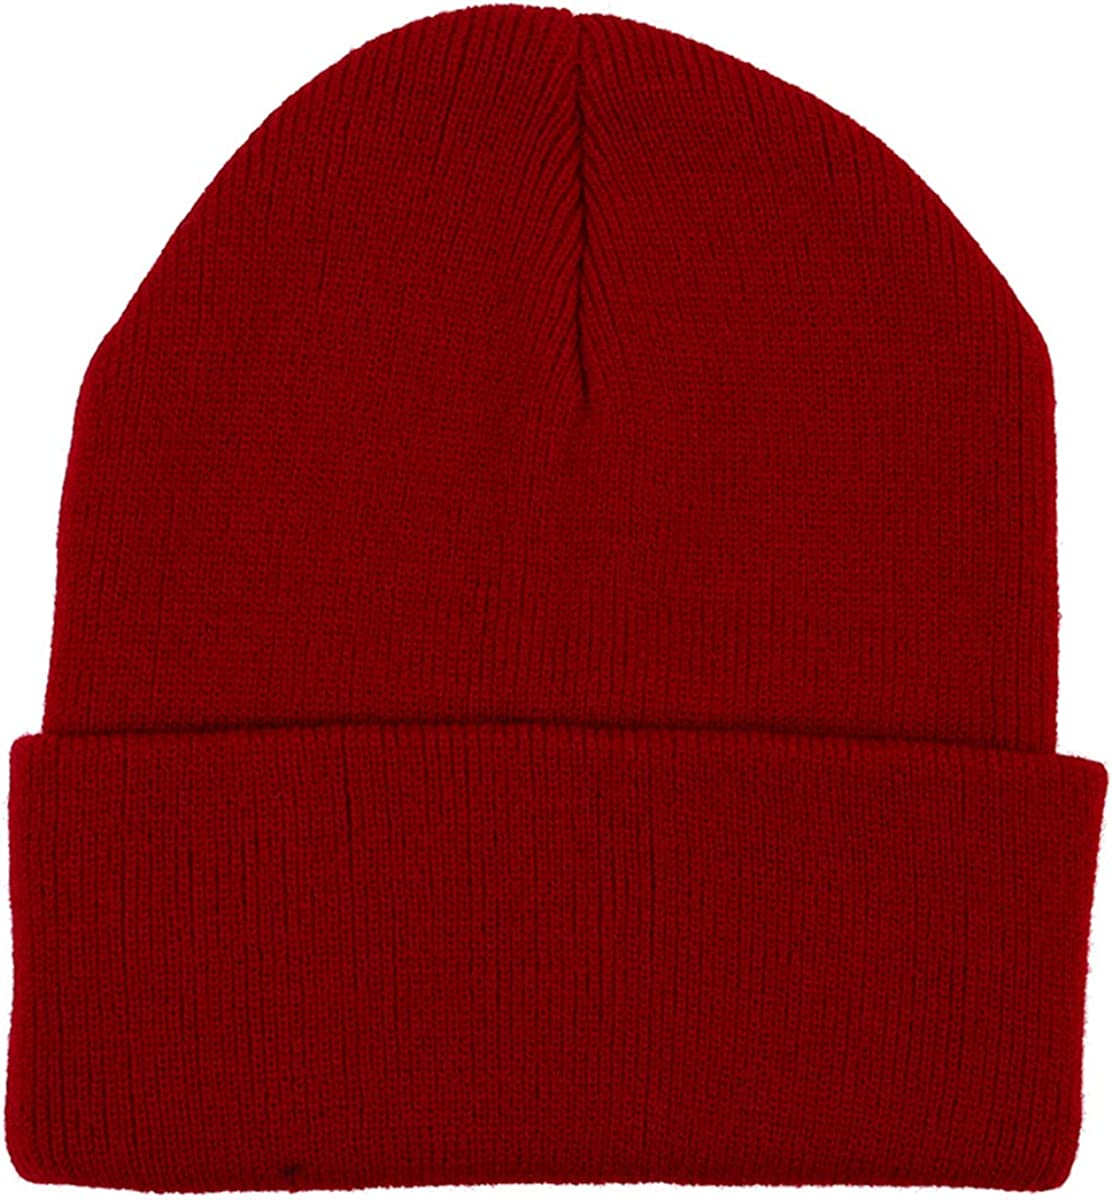 Tmtop Women Knitted Hat...